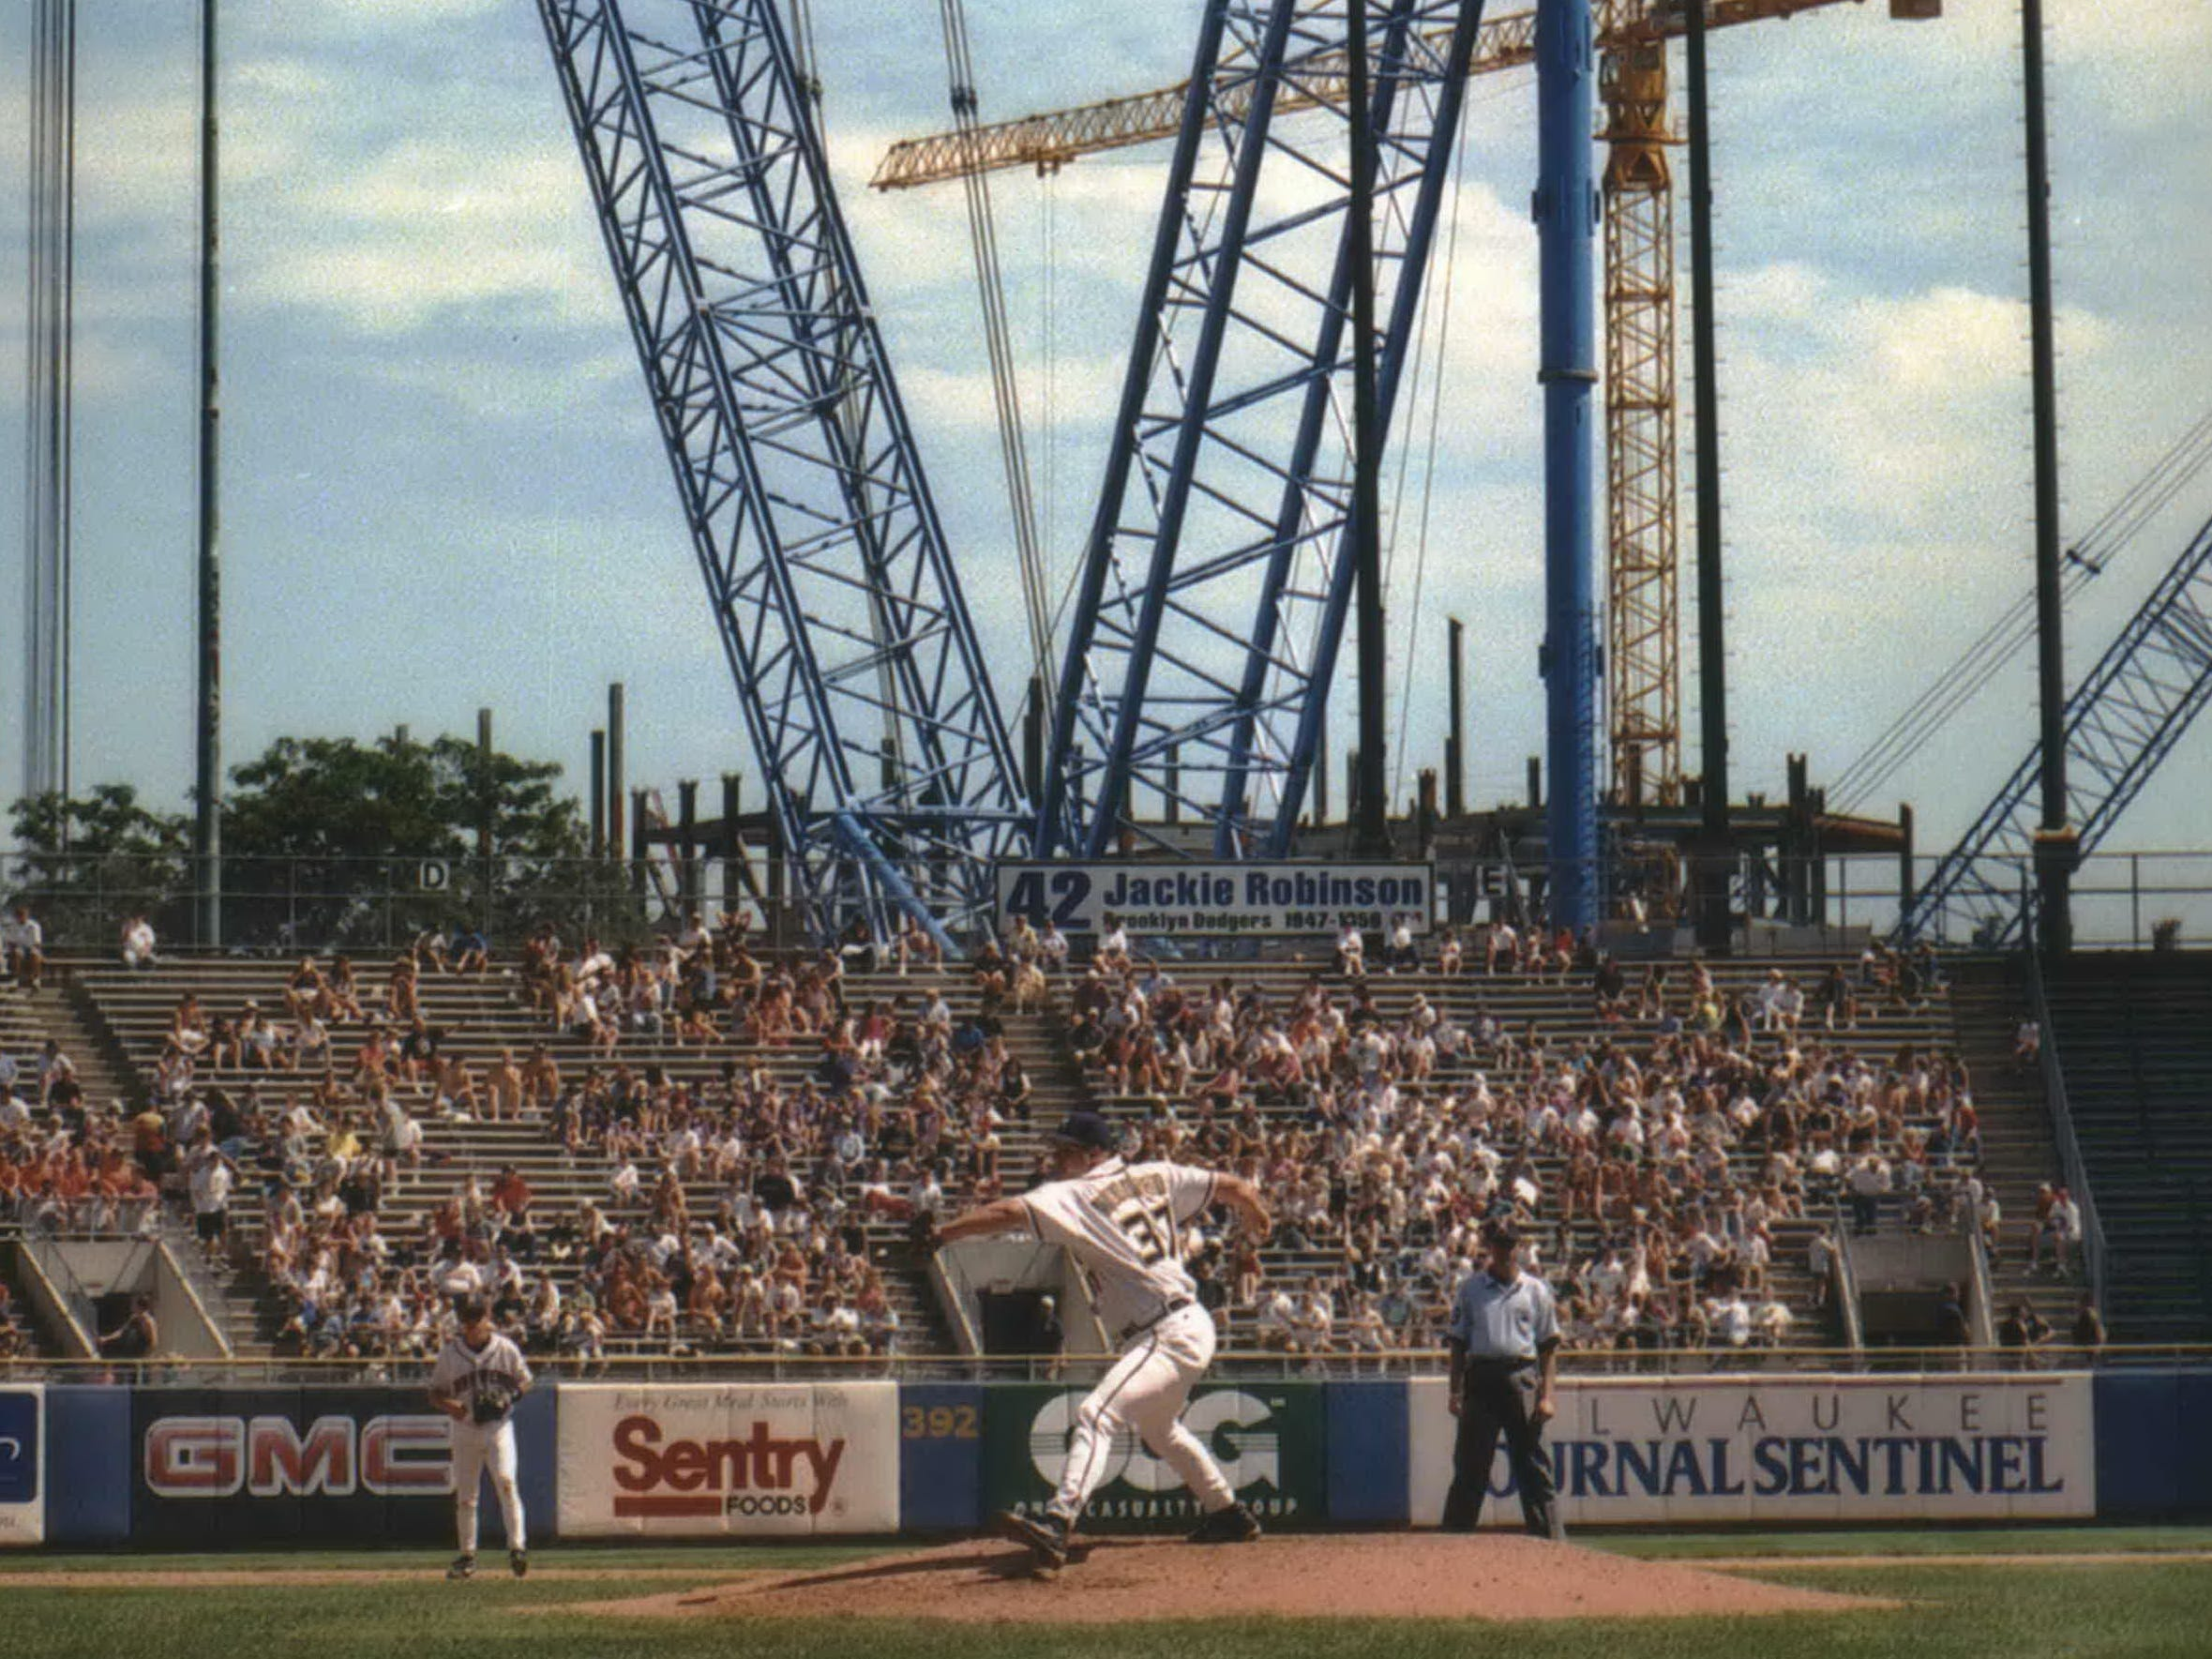 Steve Woodard of the brewers works the mound Wednesday as Big Blue, a 467-foot crane, extends over the bleachers at County Stadium. The crane is used to lift the panels for Miller Park's retractable roof.